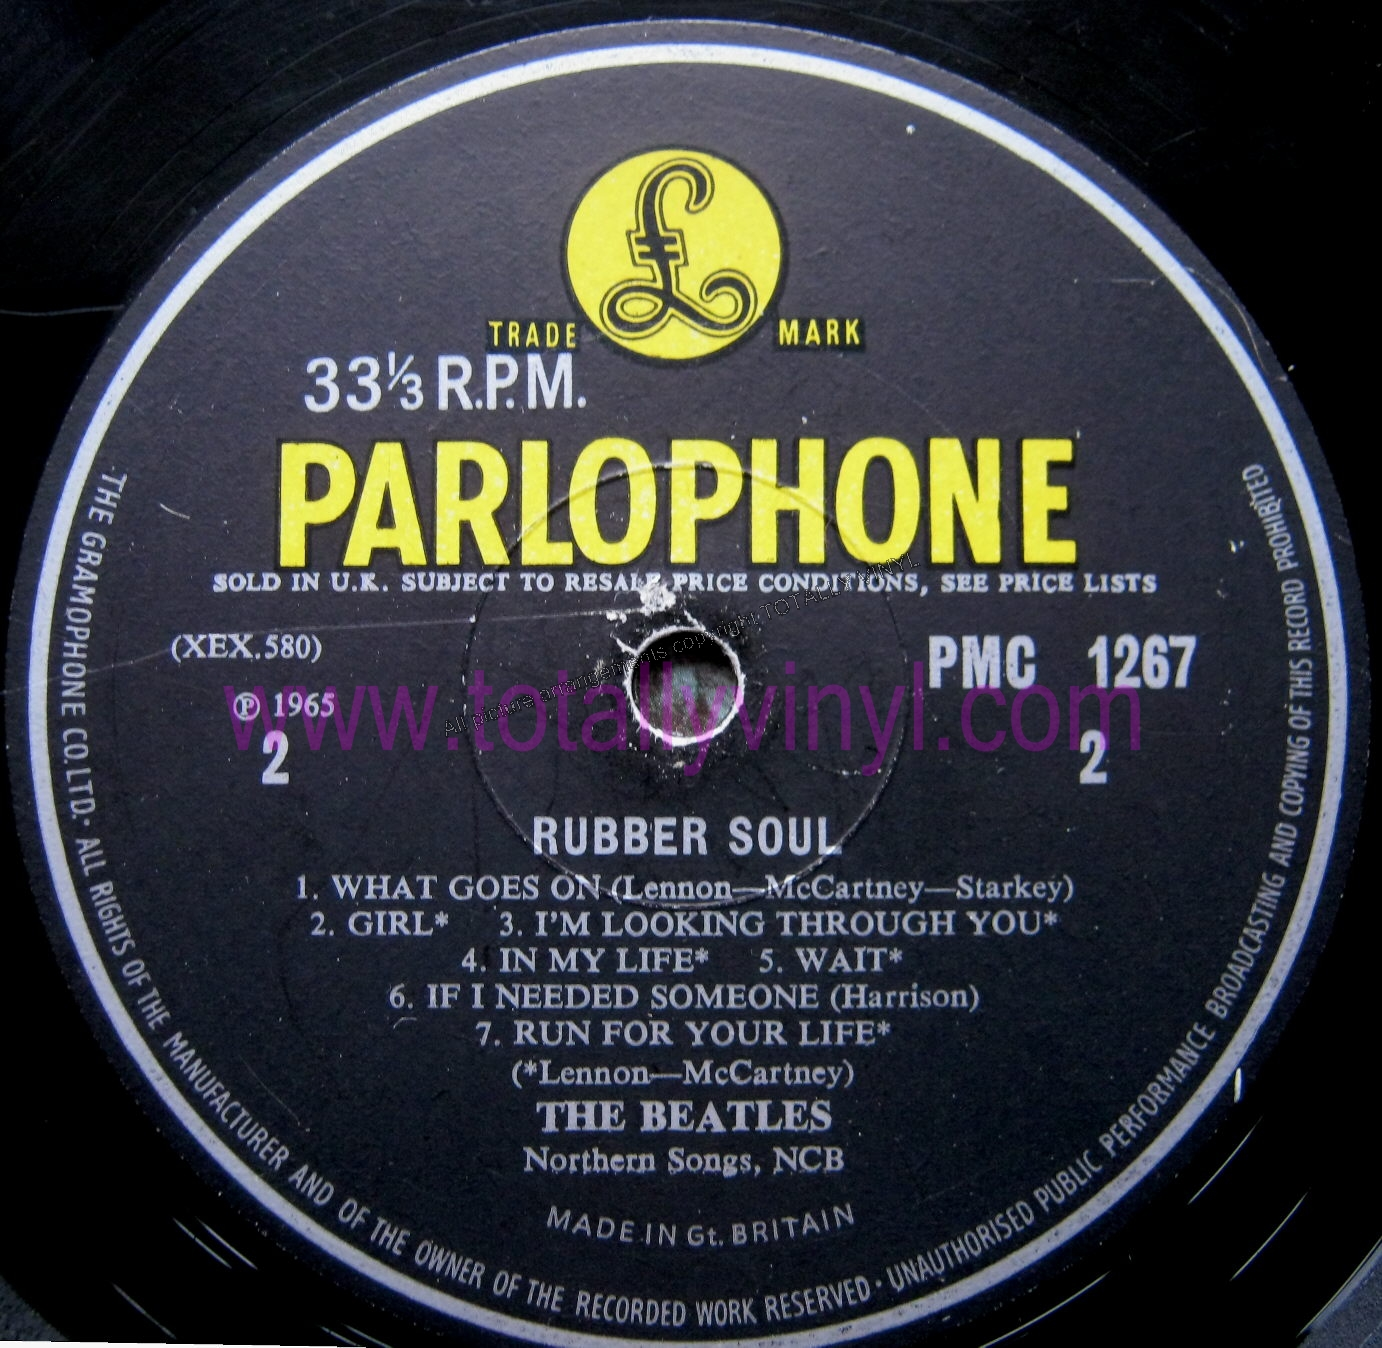 album review of the beatles rubber soul The beatles' sixth uk album and 11th us long-player, rubber soul showed the group maturing, exploring different styles of songwriting.